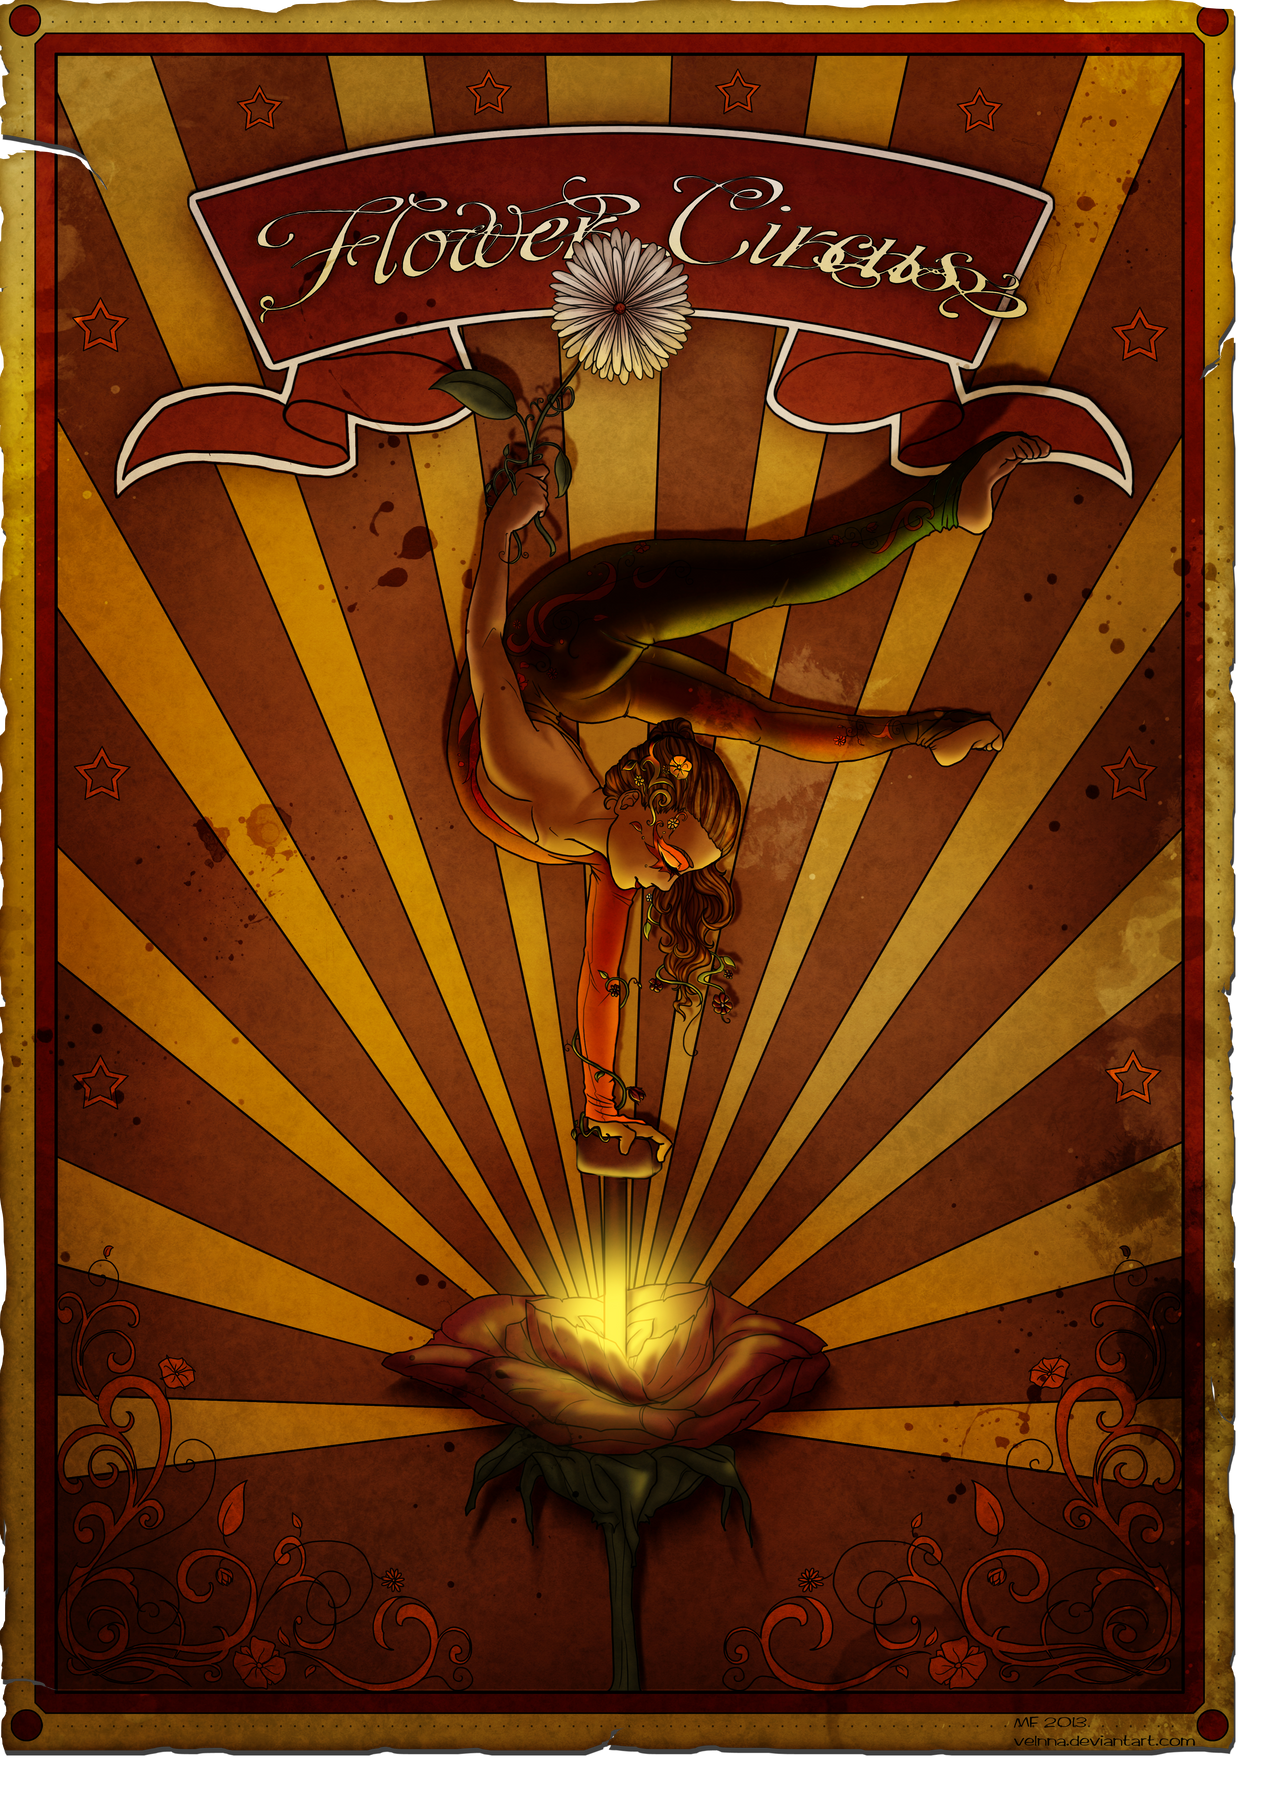 Flower Circus Poster by Akissi